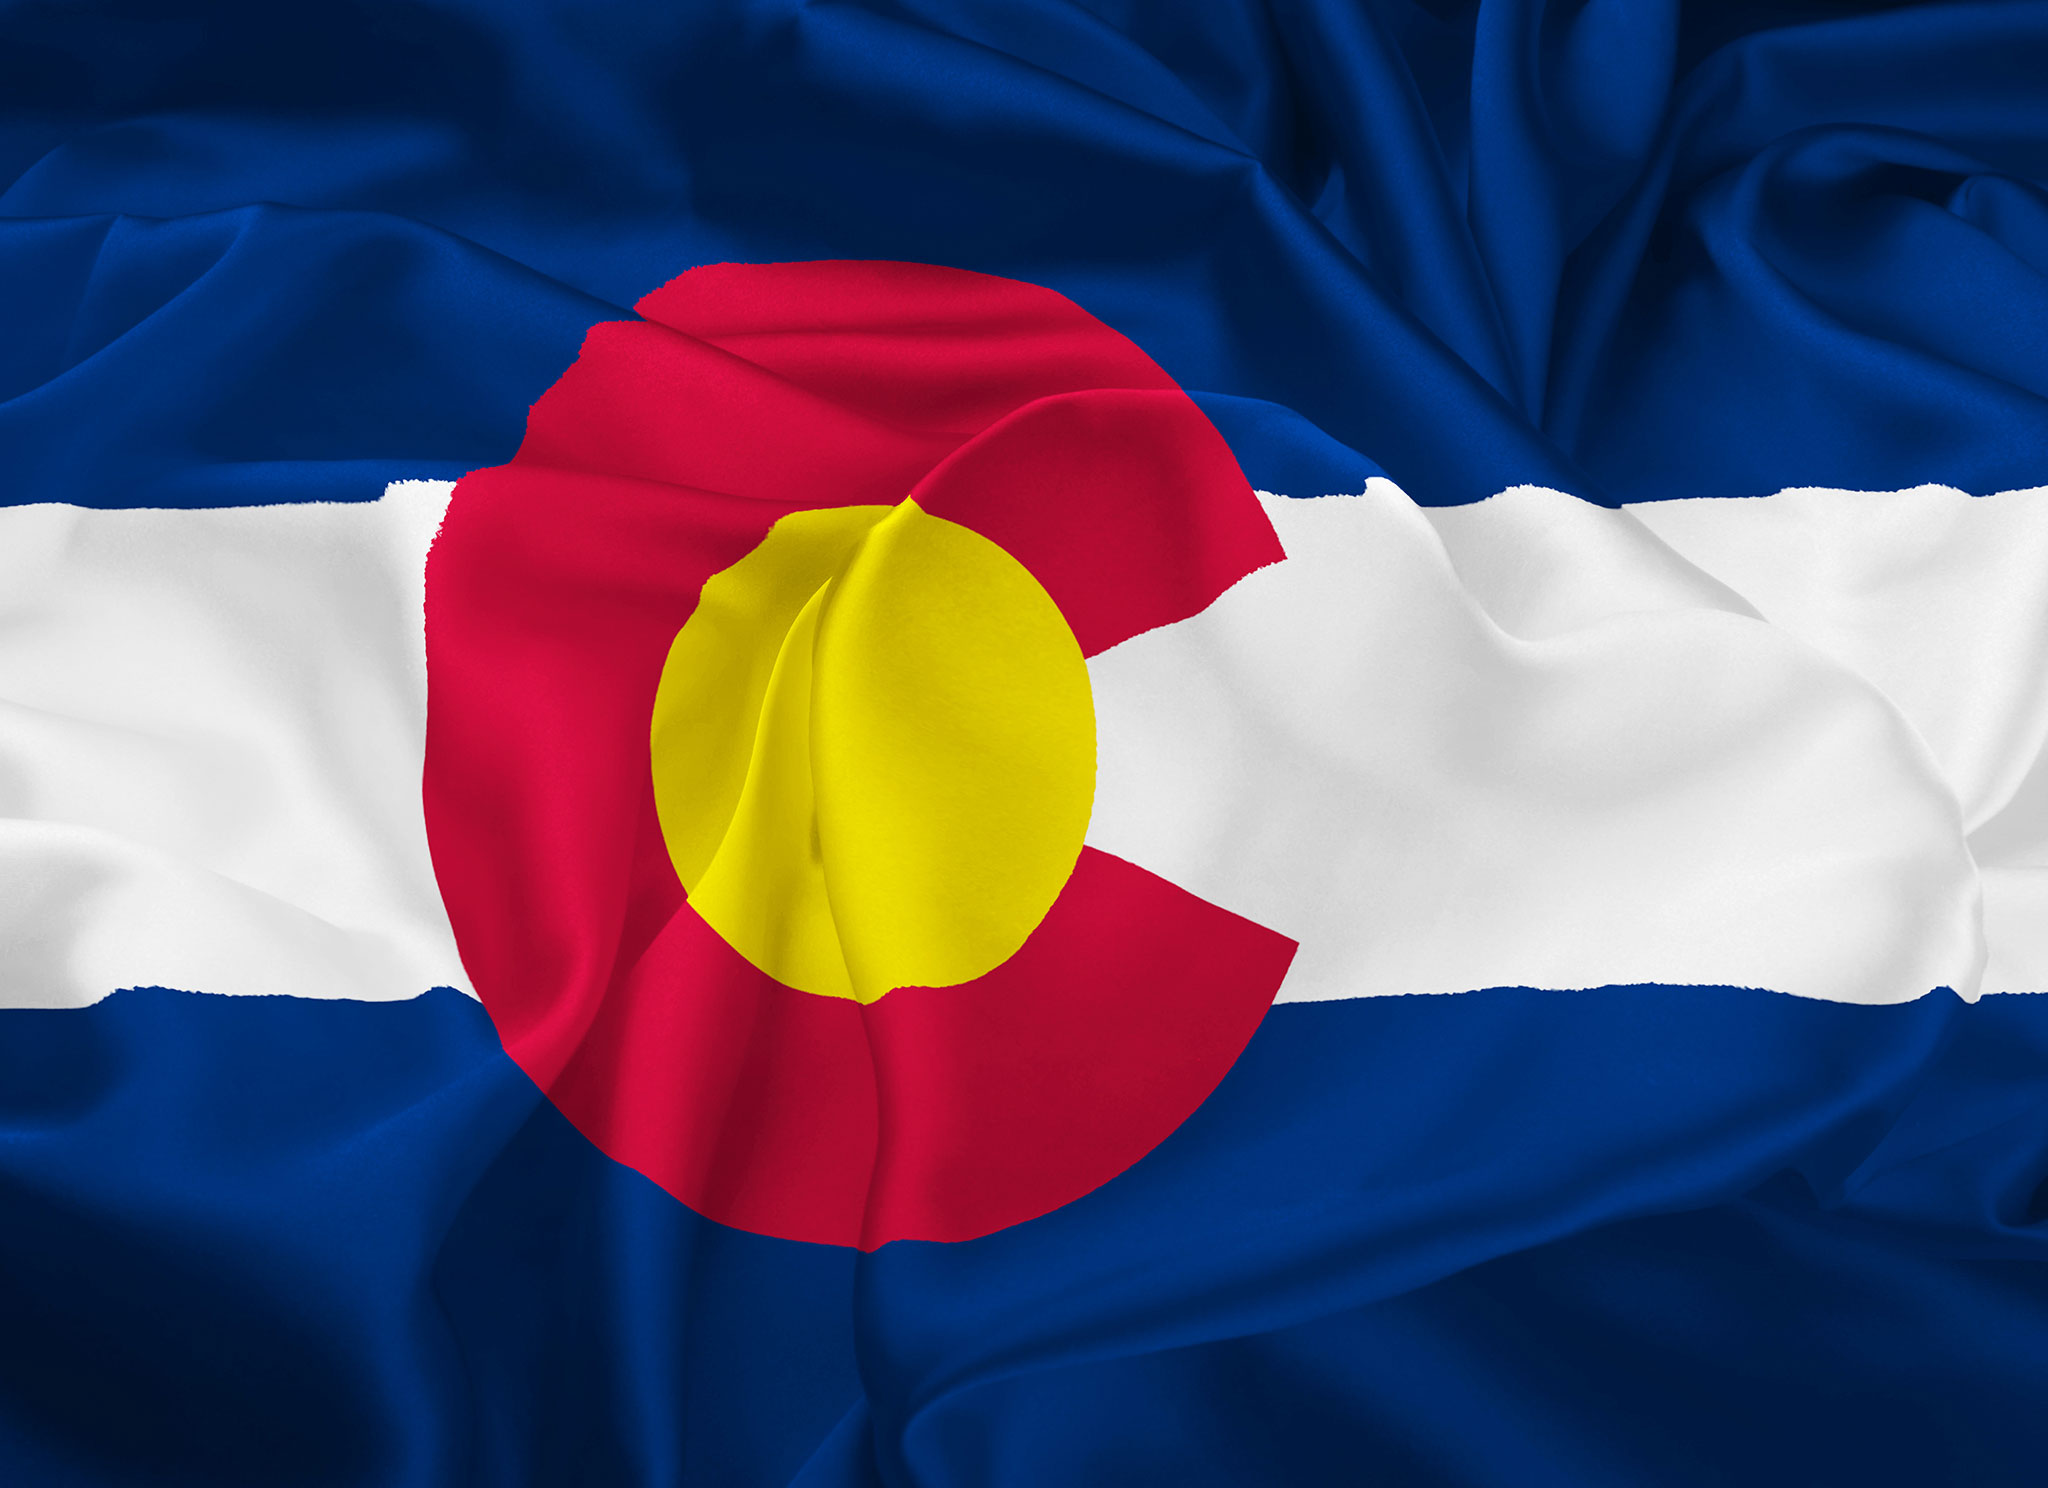 Contact mitigation for the city of Centennial, CO.